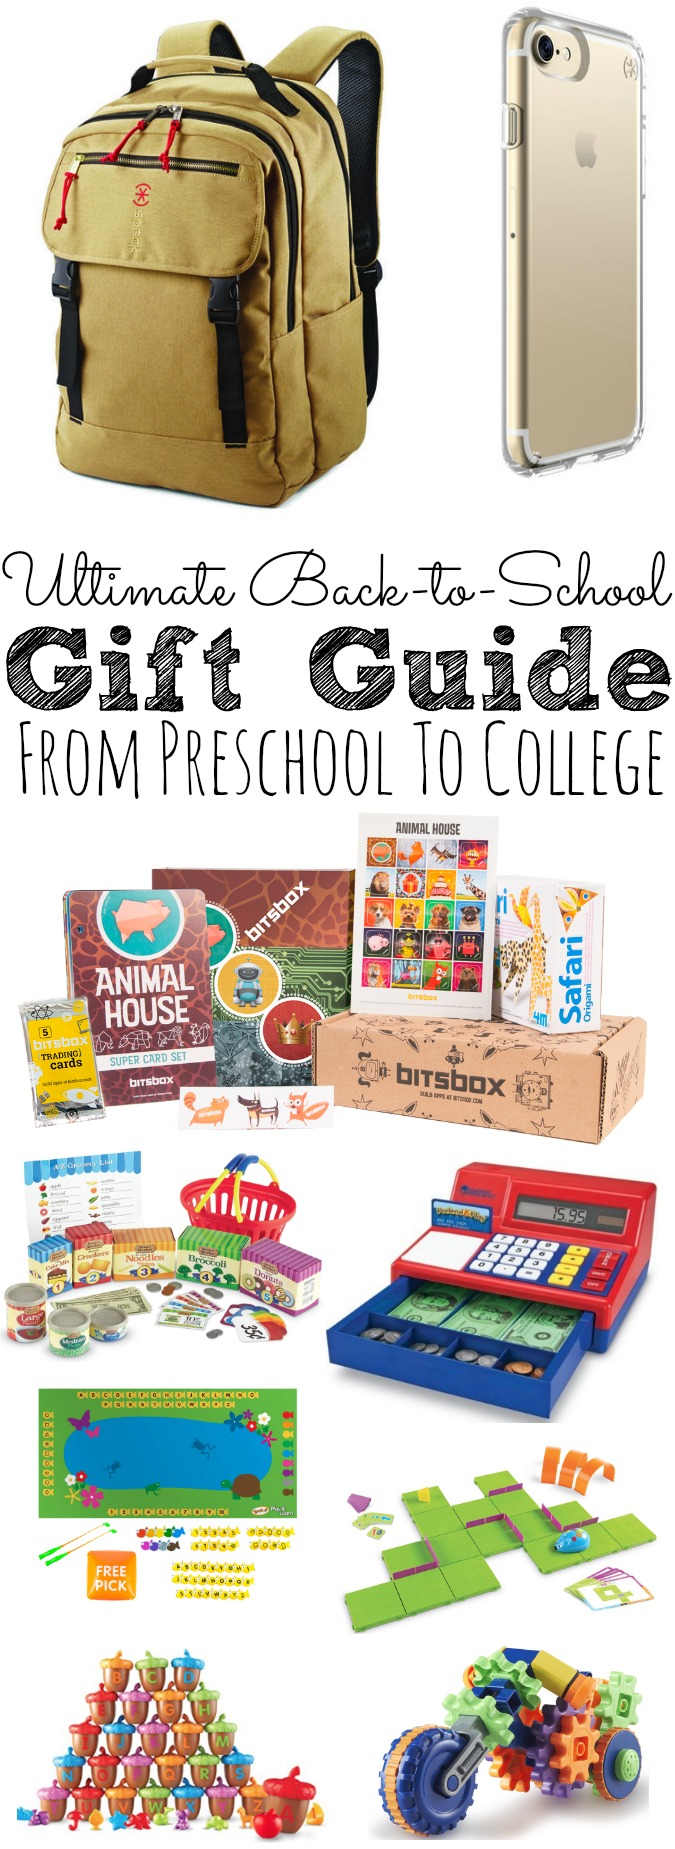 The 2017 Ultimate Back to School Gift Guide From Preschool To College - abccreativelearning.com